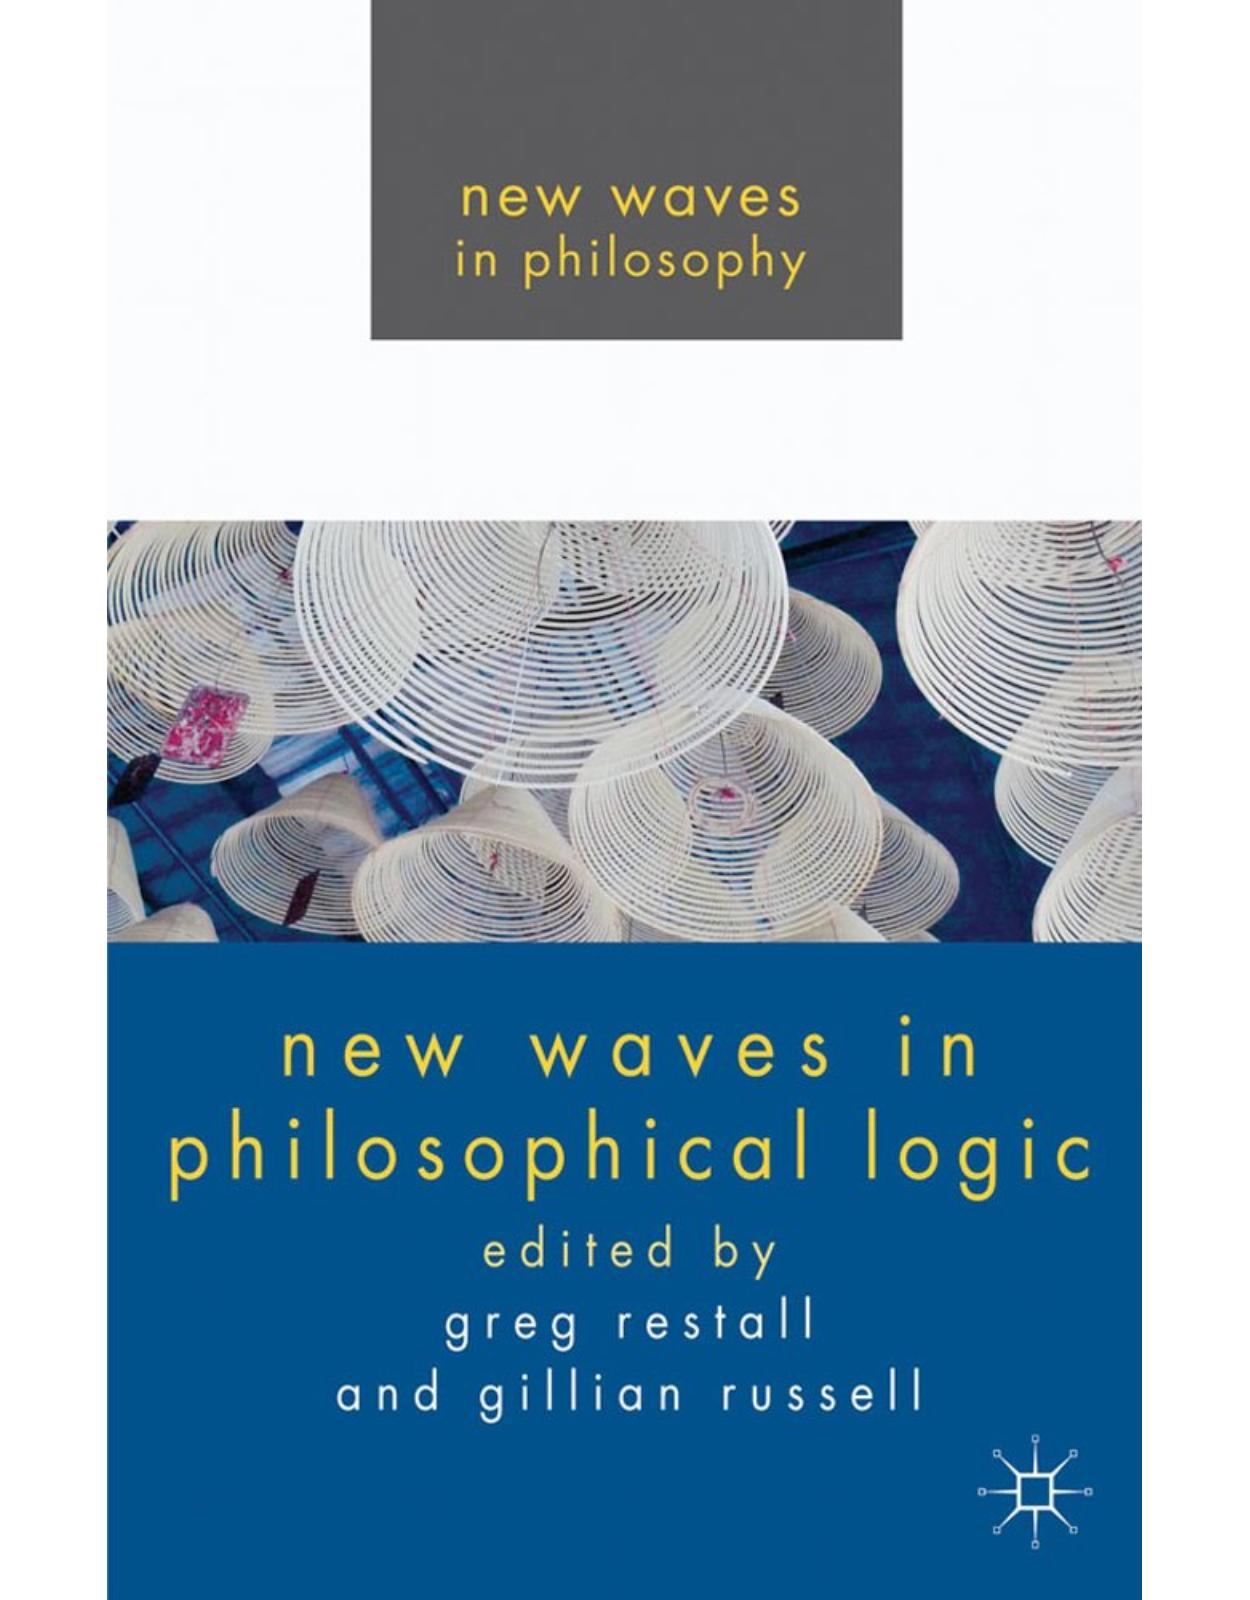 New Waves in Philosophical Logic (New Waves in Philosophy)